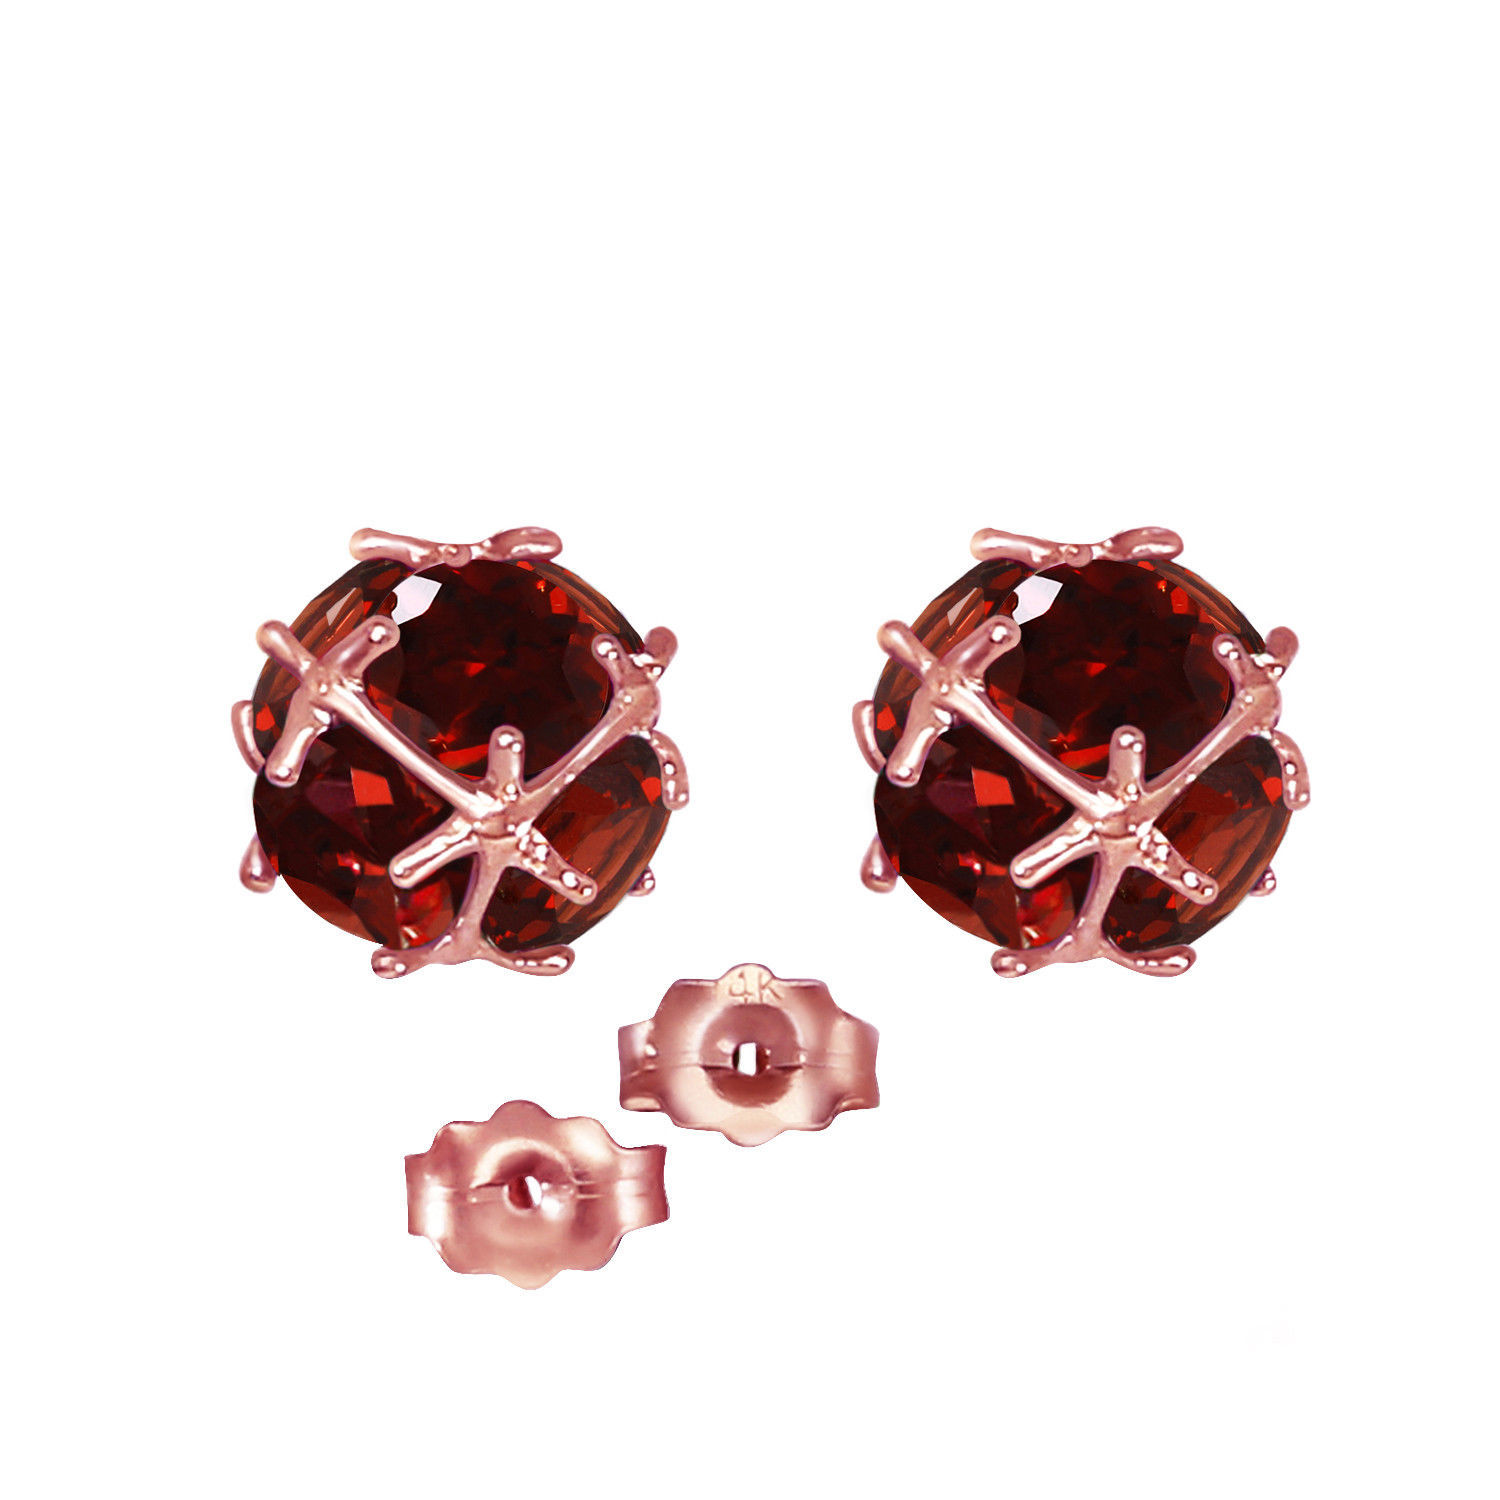 Primary image for 14K Solid Rose Gold Women's Gorgeous Stud Fashion Earrings w/ Natural Garnets